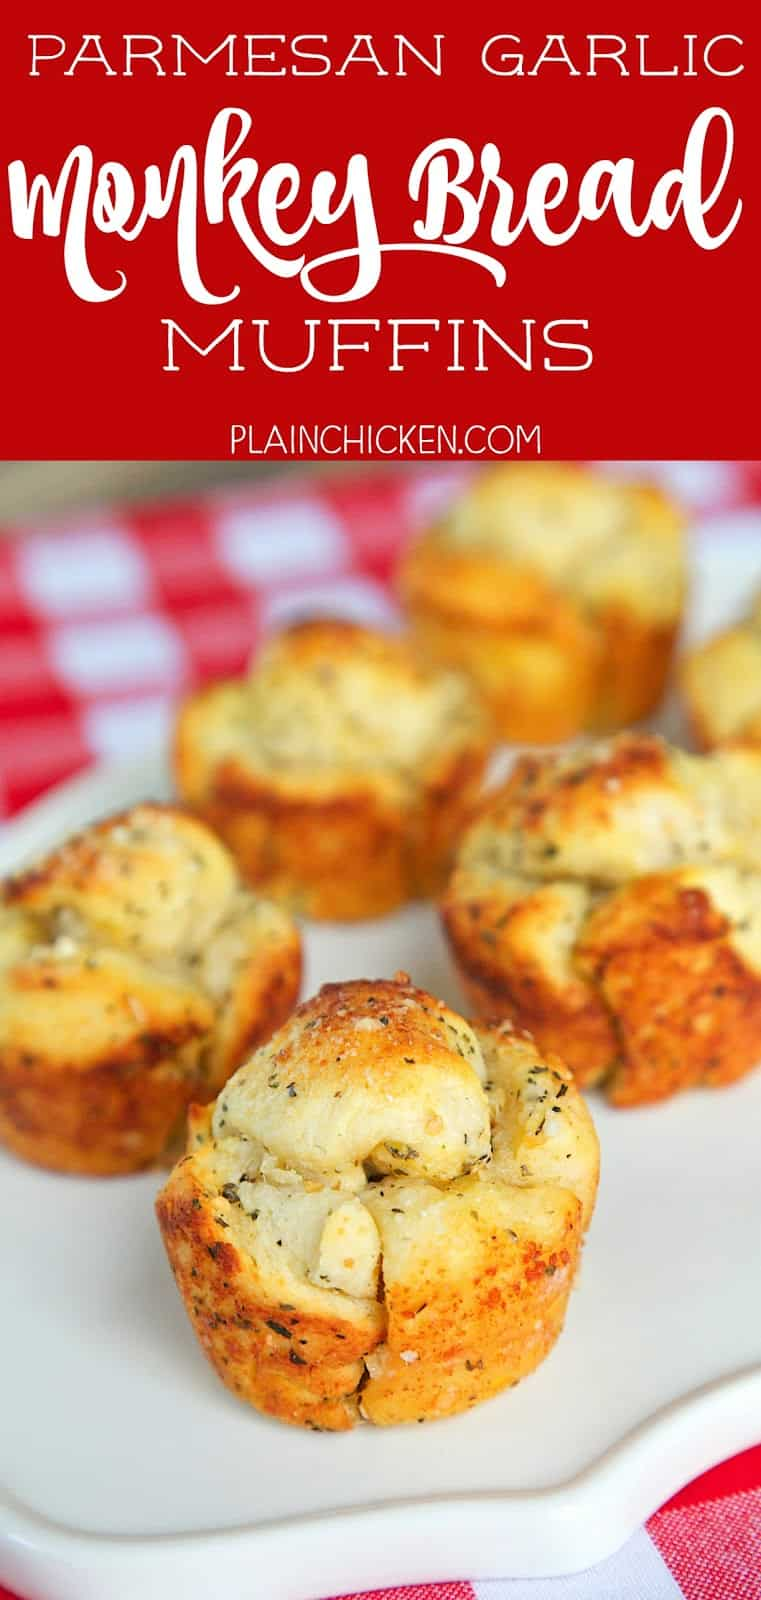 Parmesan Garlic Monkey Bread Muffins - only 5 ingredients and ready in 10 minutes. Refrigerated biscuits, butter, Italian seasoning, garlic and parmesan cheese. We ate way too many of these! SO good!! Serve with some warm pizza sauce!